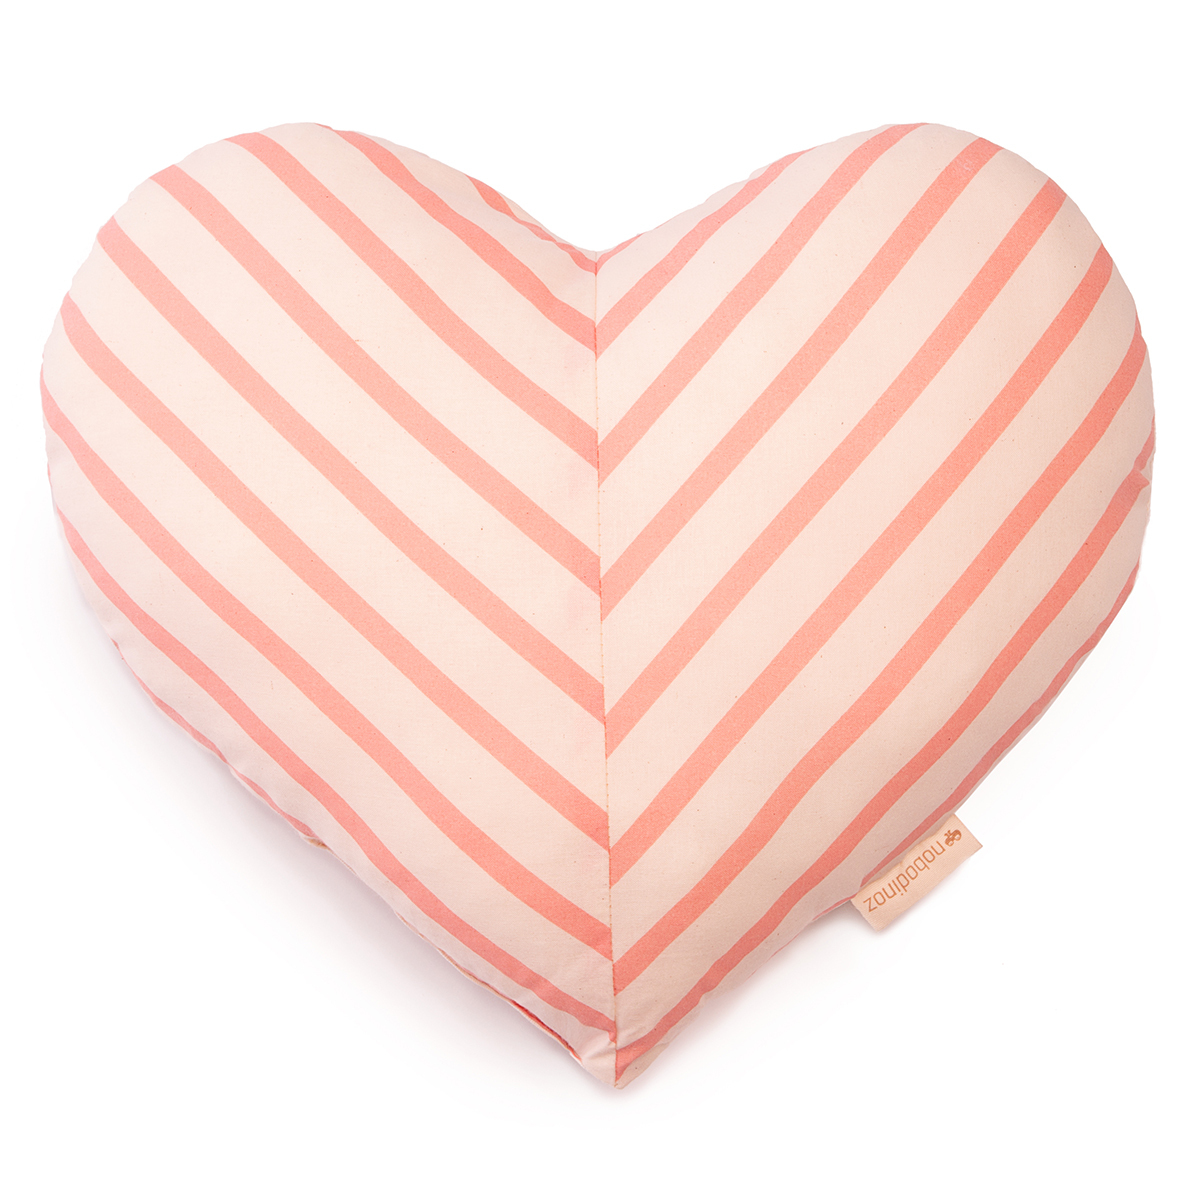 Coussin Coussin Love - Candy Stripes Coussin Love - Candy Stripes